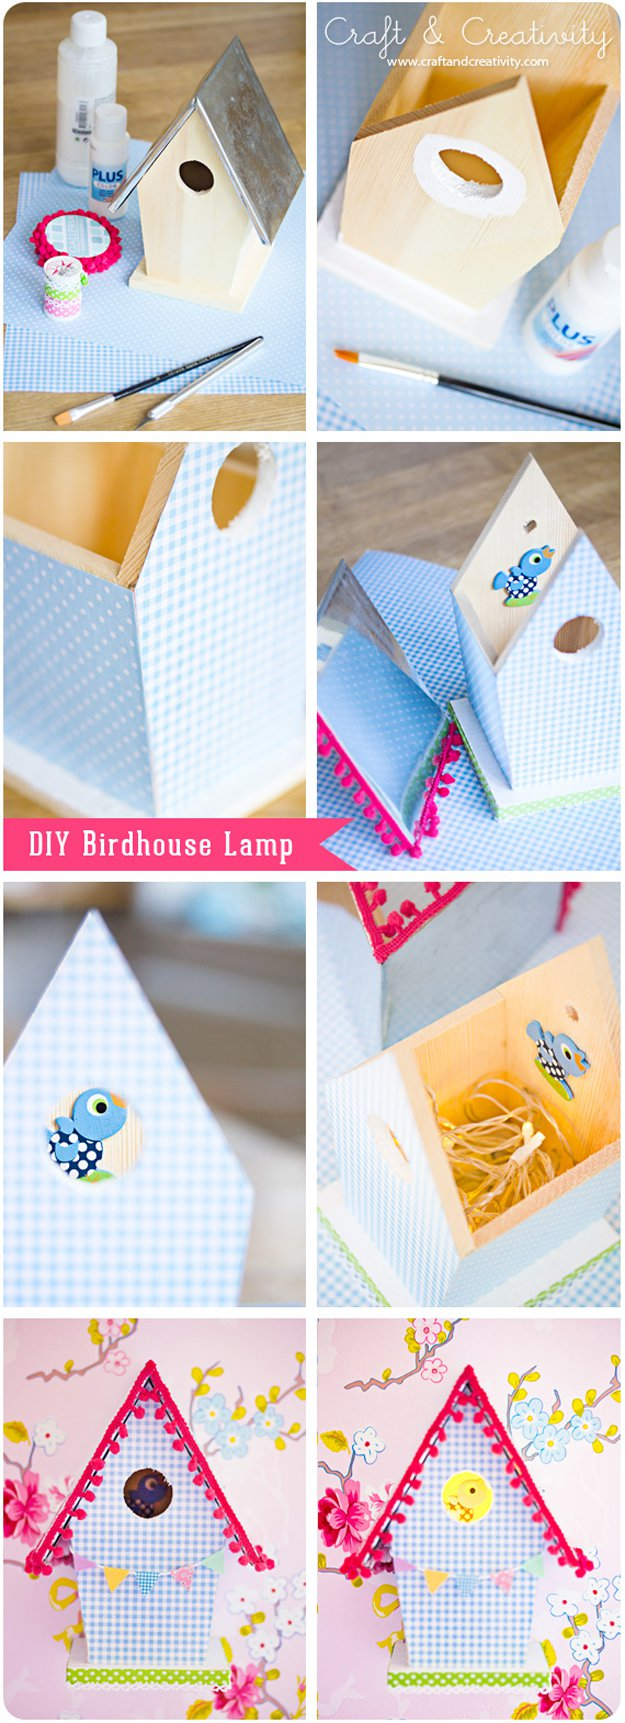 Washi Tape Crafts - DIY Birdhouse Lamp - Wall Art, Frames, Cards, Pencils, Room Decor and DIY Gifts, Back To School Supplies - Creative, Fun Craft Ideas for Teens, Tweens and Teenagers - Step by Step Tutorials and Instructions #washitape #crafts #cheapcrafts #teencrafts